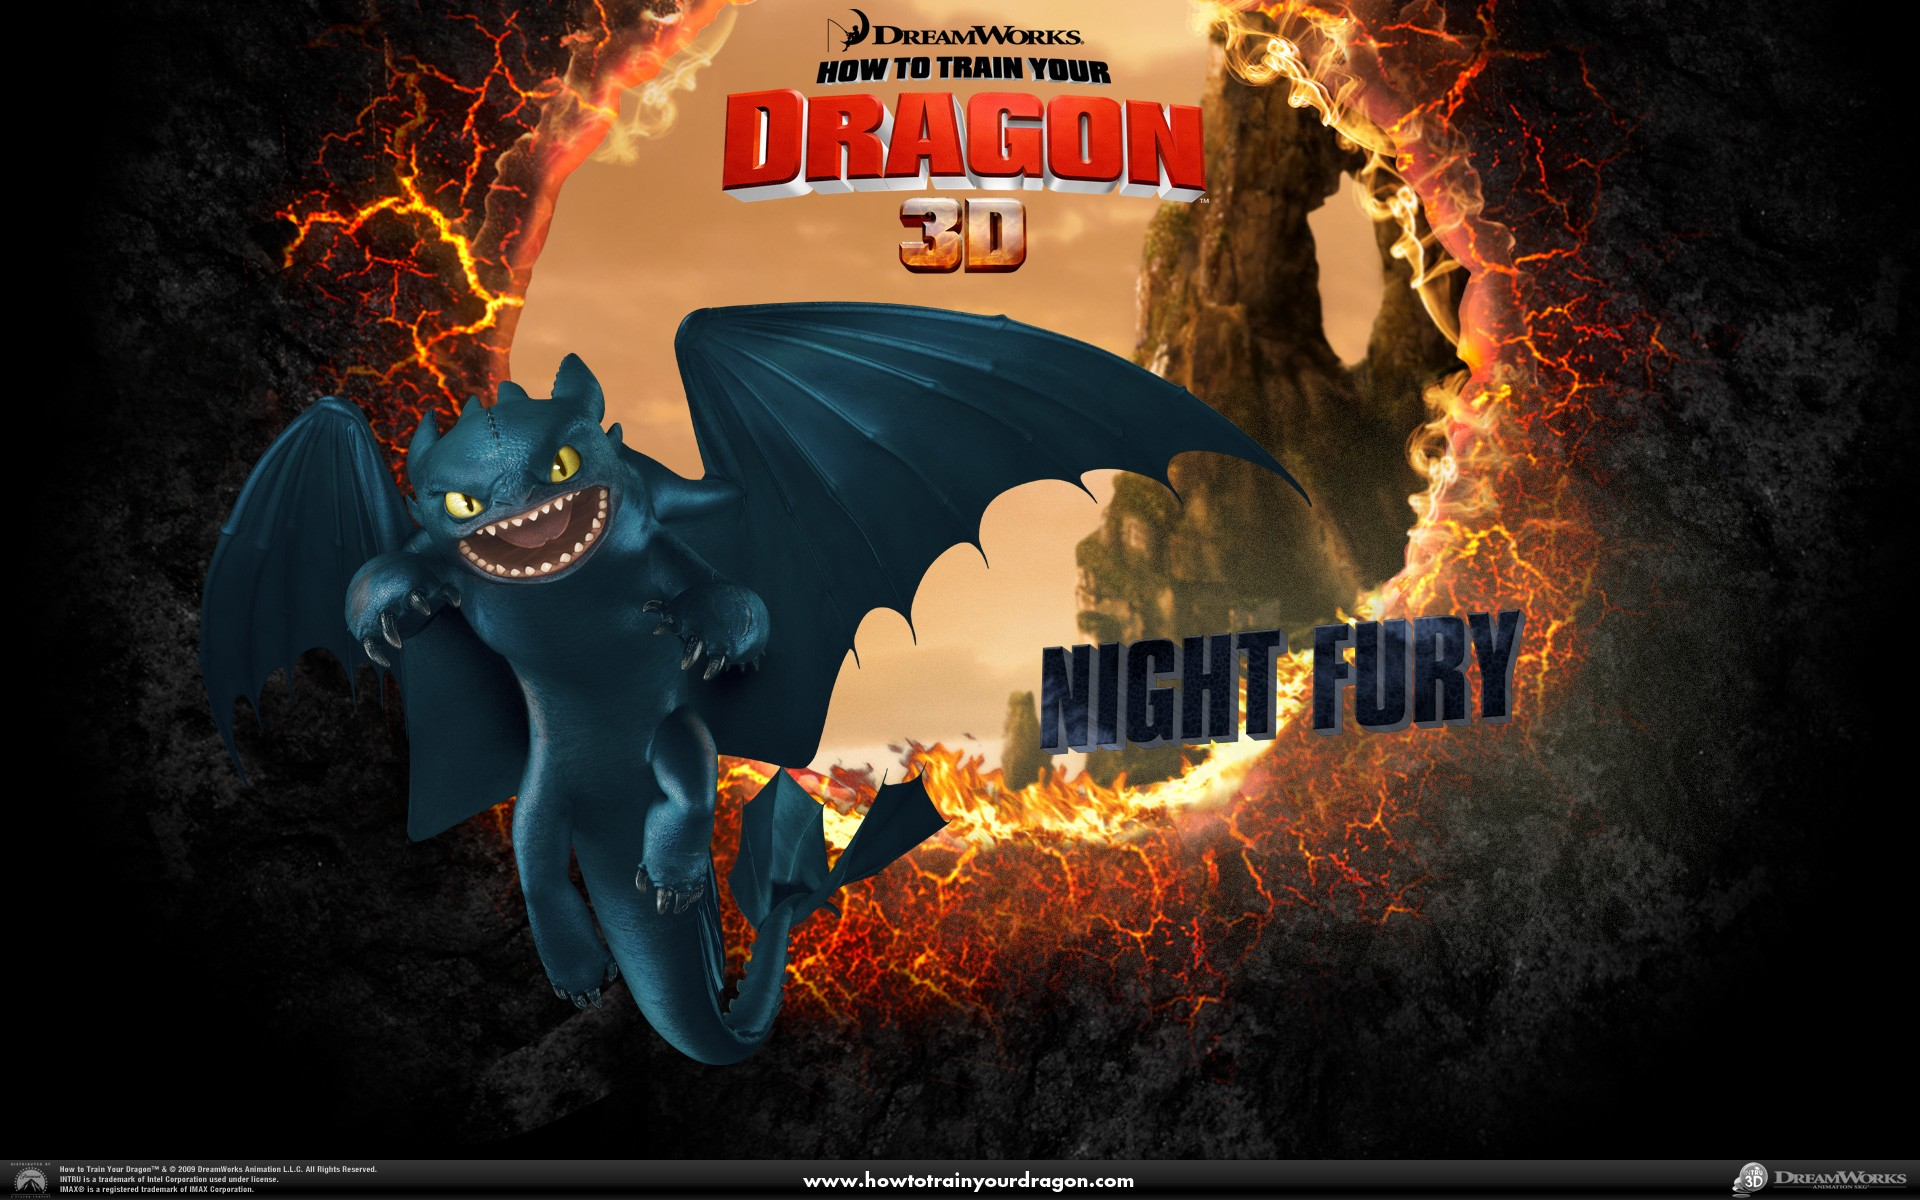 Un wallpaper ufficiale del drago Furia Buia del film Dragon Trainer